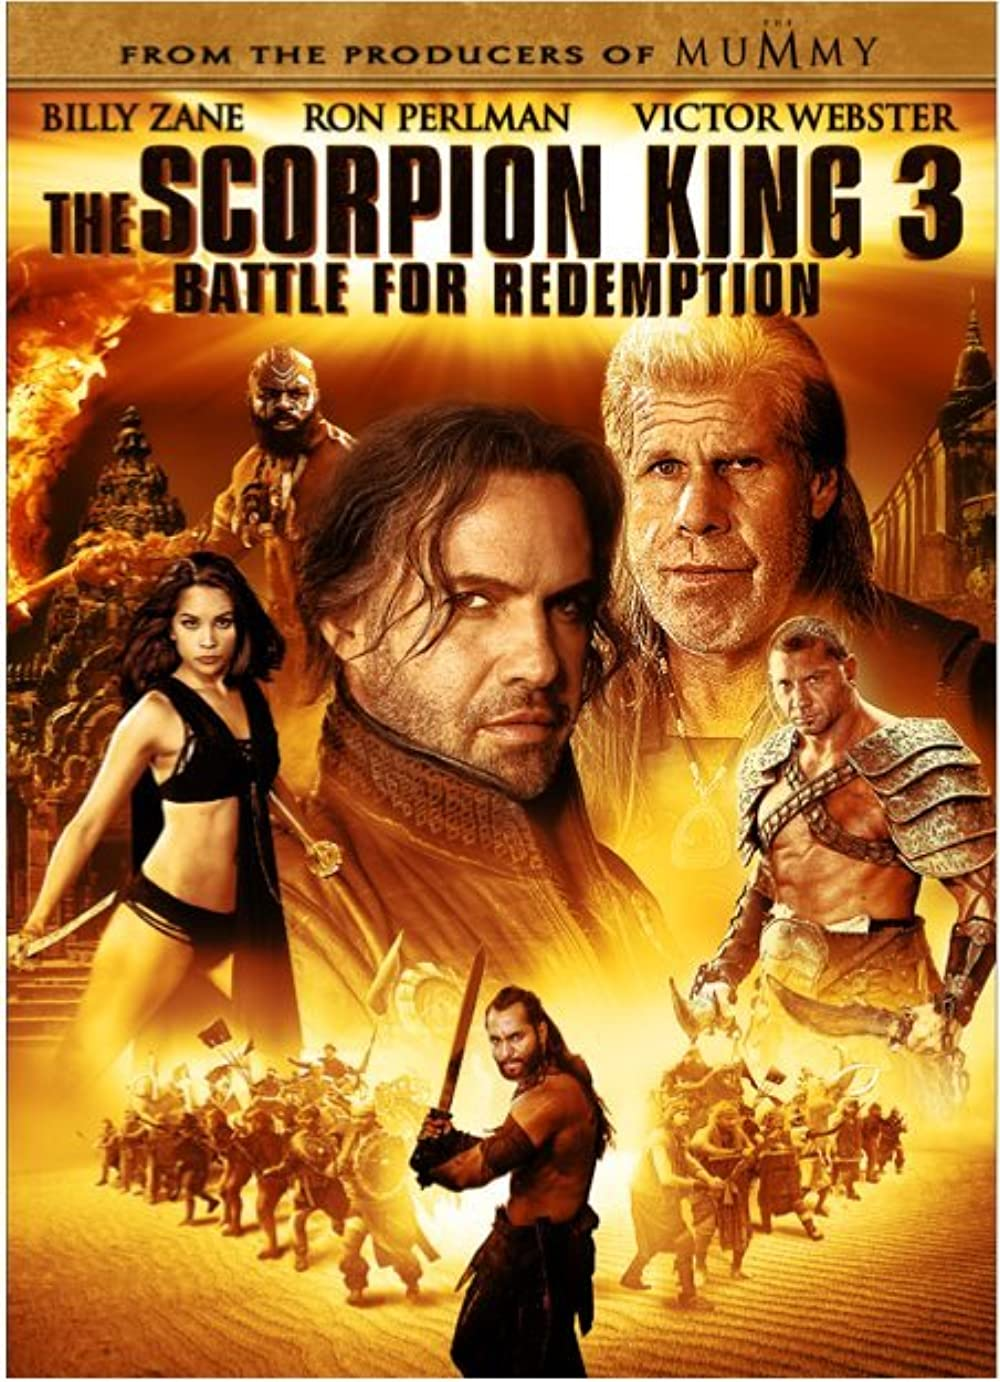 The Scorpion King 3 Battle for Redemption 2012 Hindi Dual Audio 400MB BluRay Download